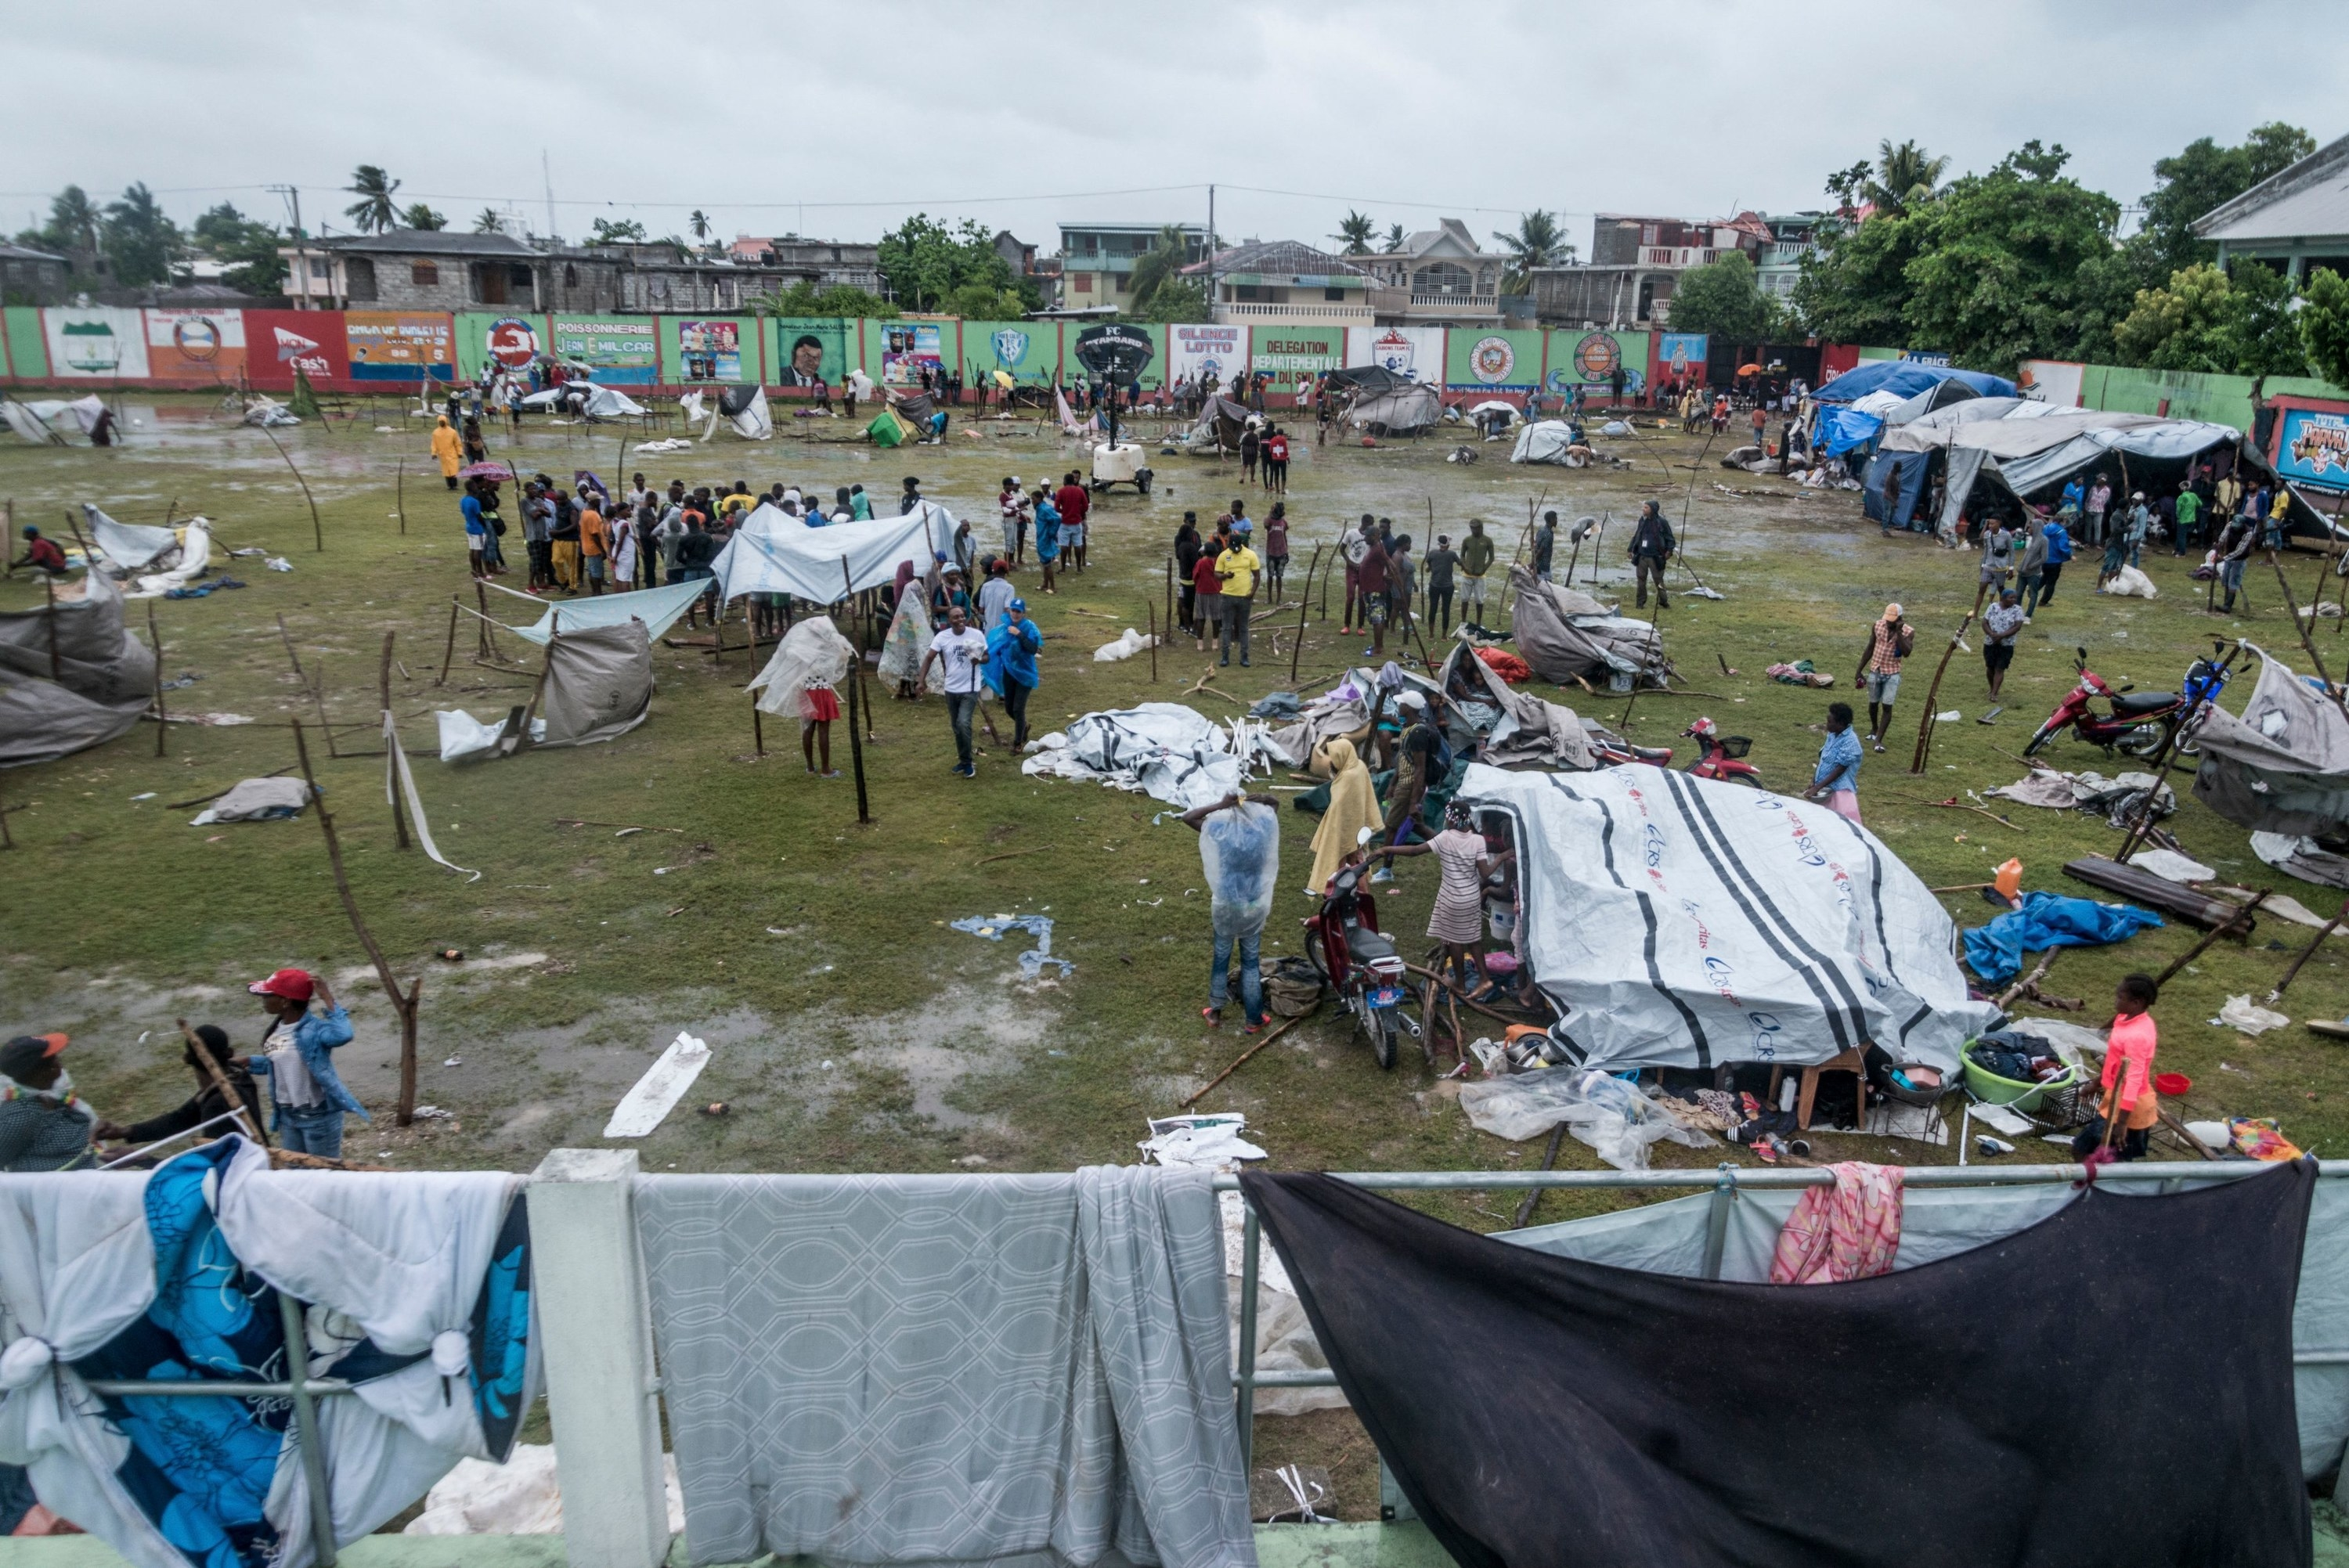 An aerial view of a camp set up for victims of the tropical storm